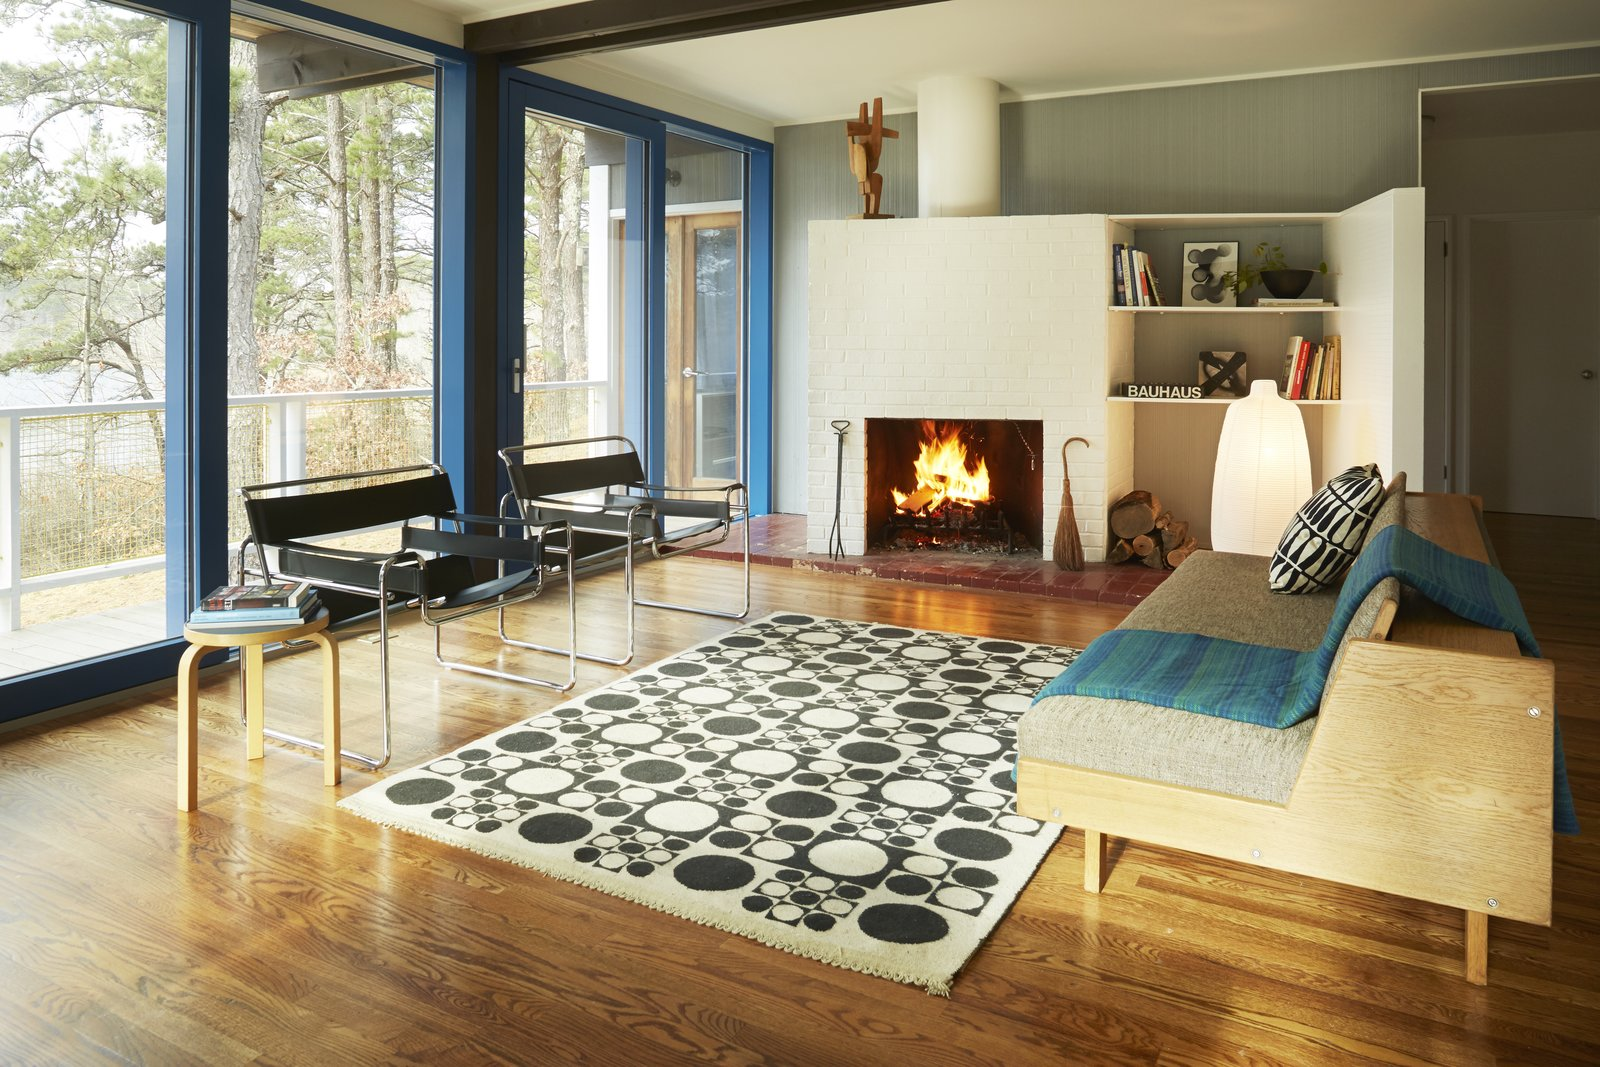 Living Room, Chair, Sofa, End Tables, Floor Lighting, Standard Layout Fireplace, Wood Burning Fireplace, Medium Hardwood Floor, and Rug Floor The living area has been lovingly restored.  Photo 5 of 9 in Experience Cape Cod Modern by Staying at the Midcentury Weidlinger House